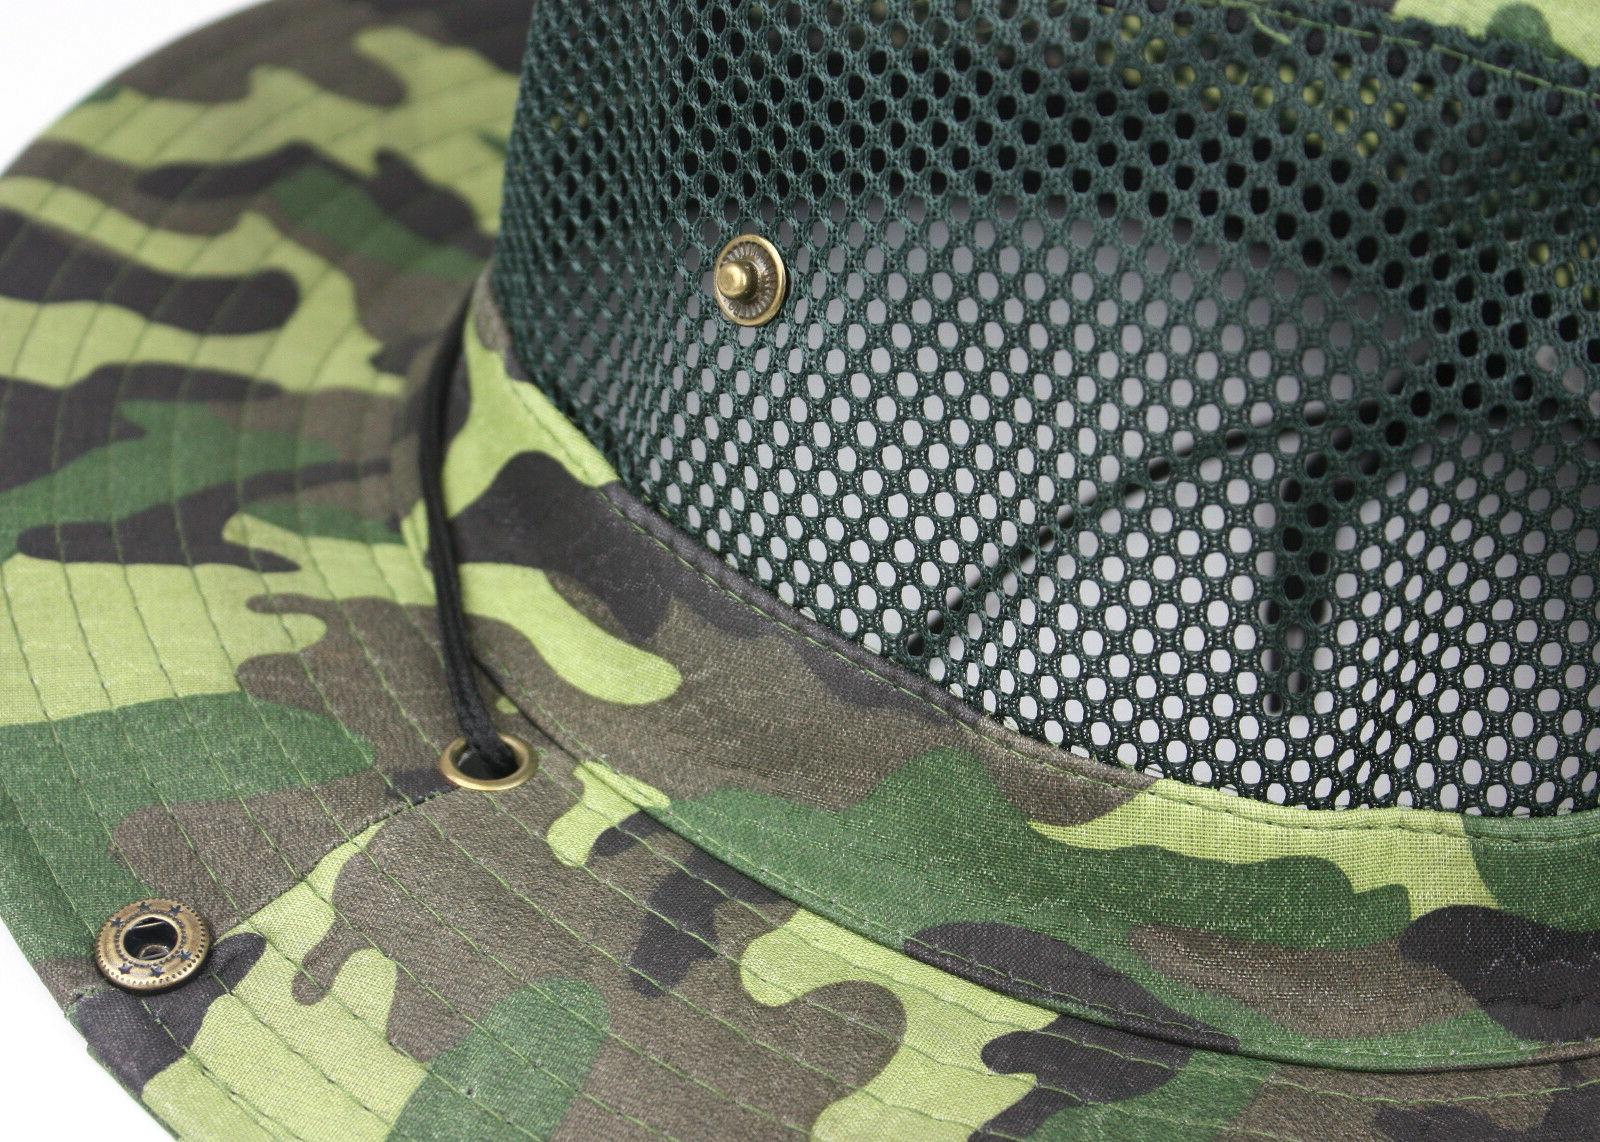 Cool Mesh Brim Camo Boonie Hunting Fishing Hiking